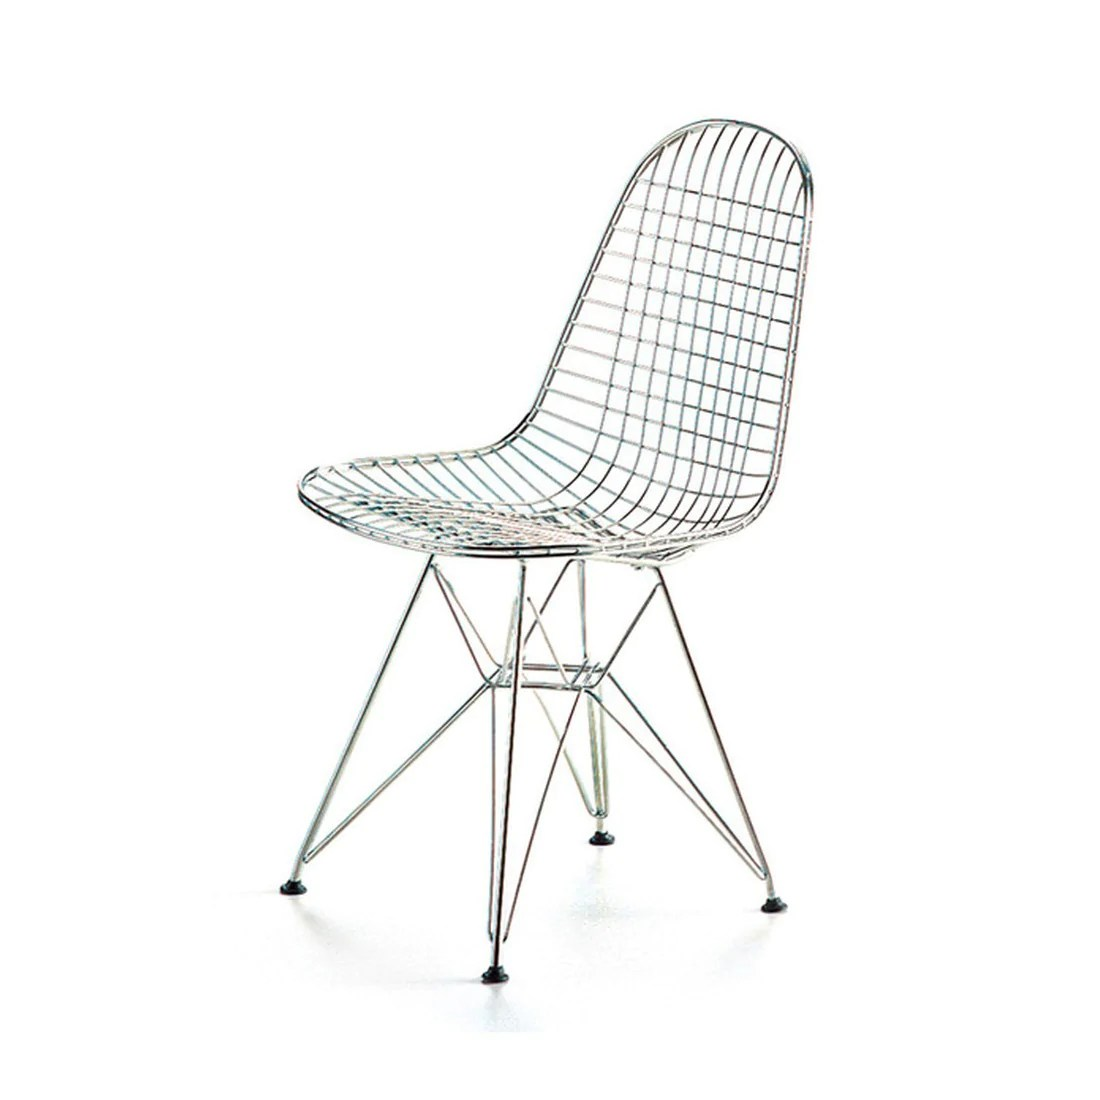 Eames Wire Chair Vitra Miniature Chair Dkr Wire